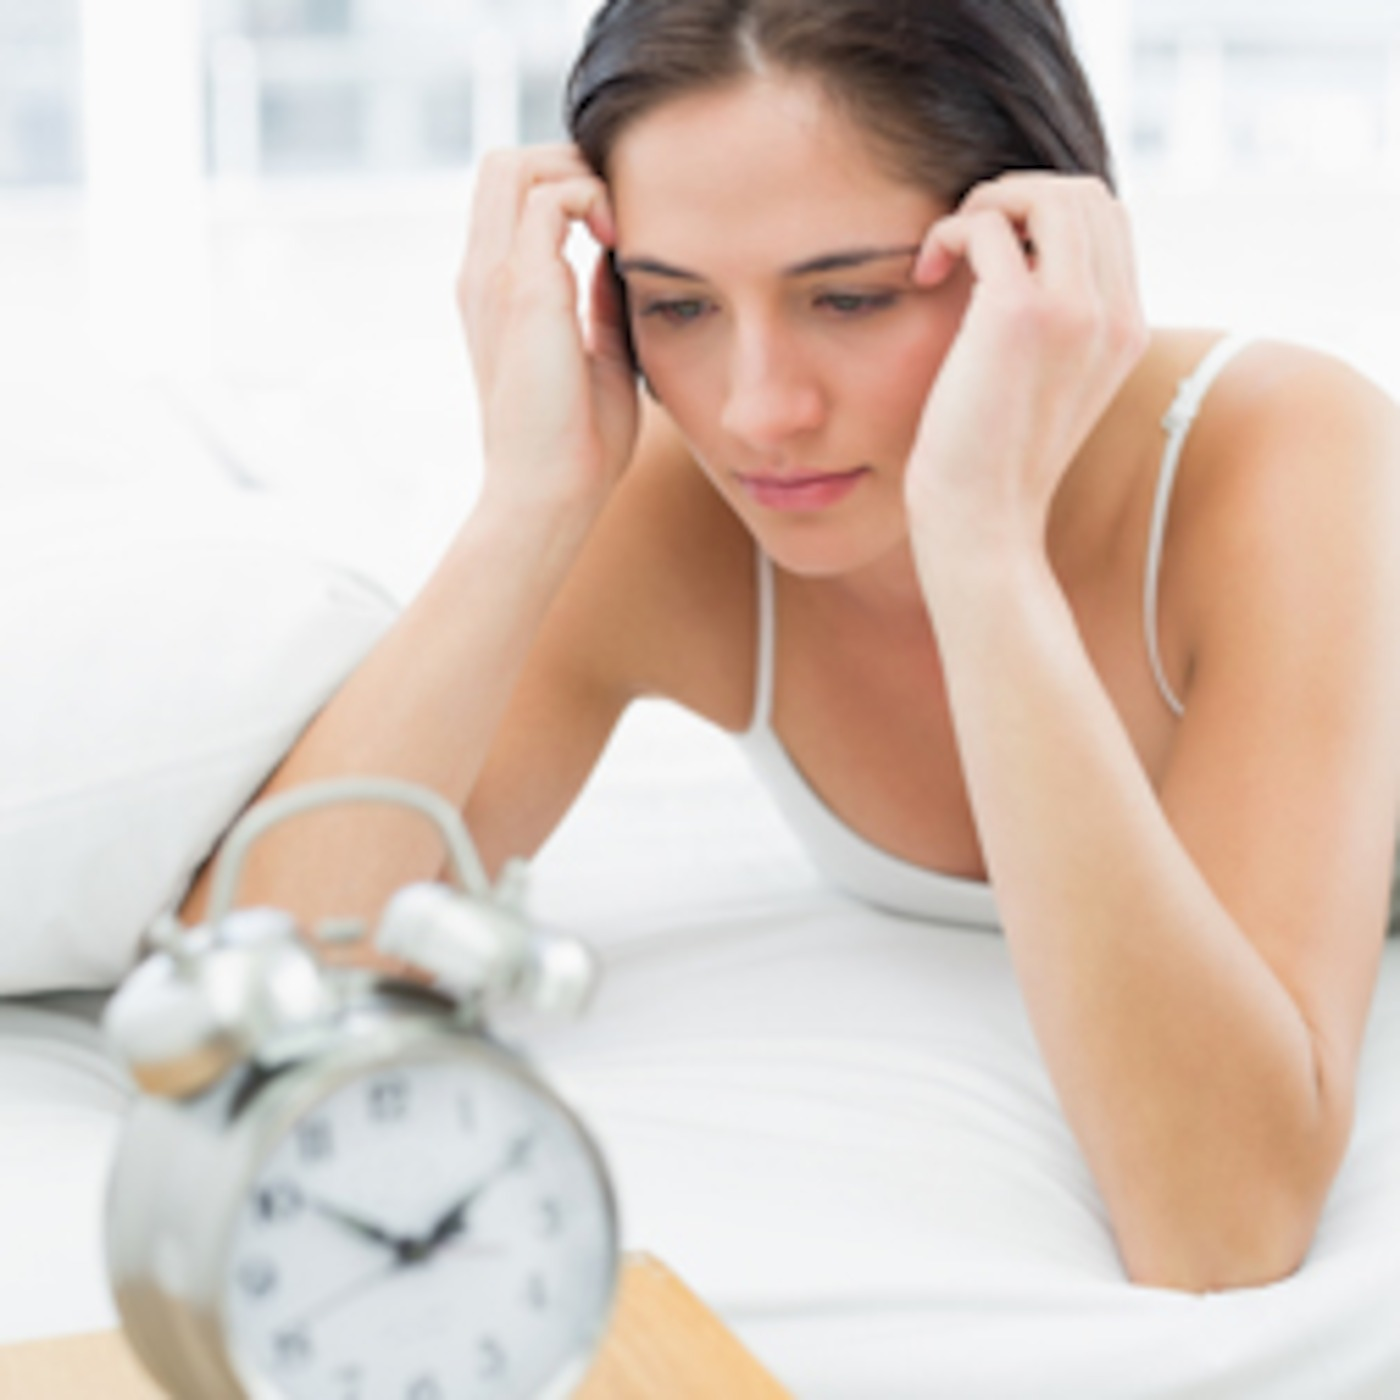 The art of love podcast